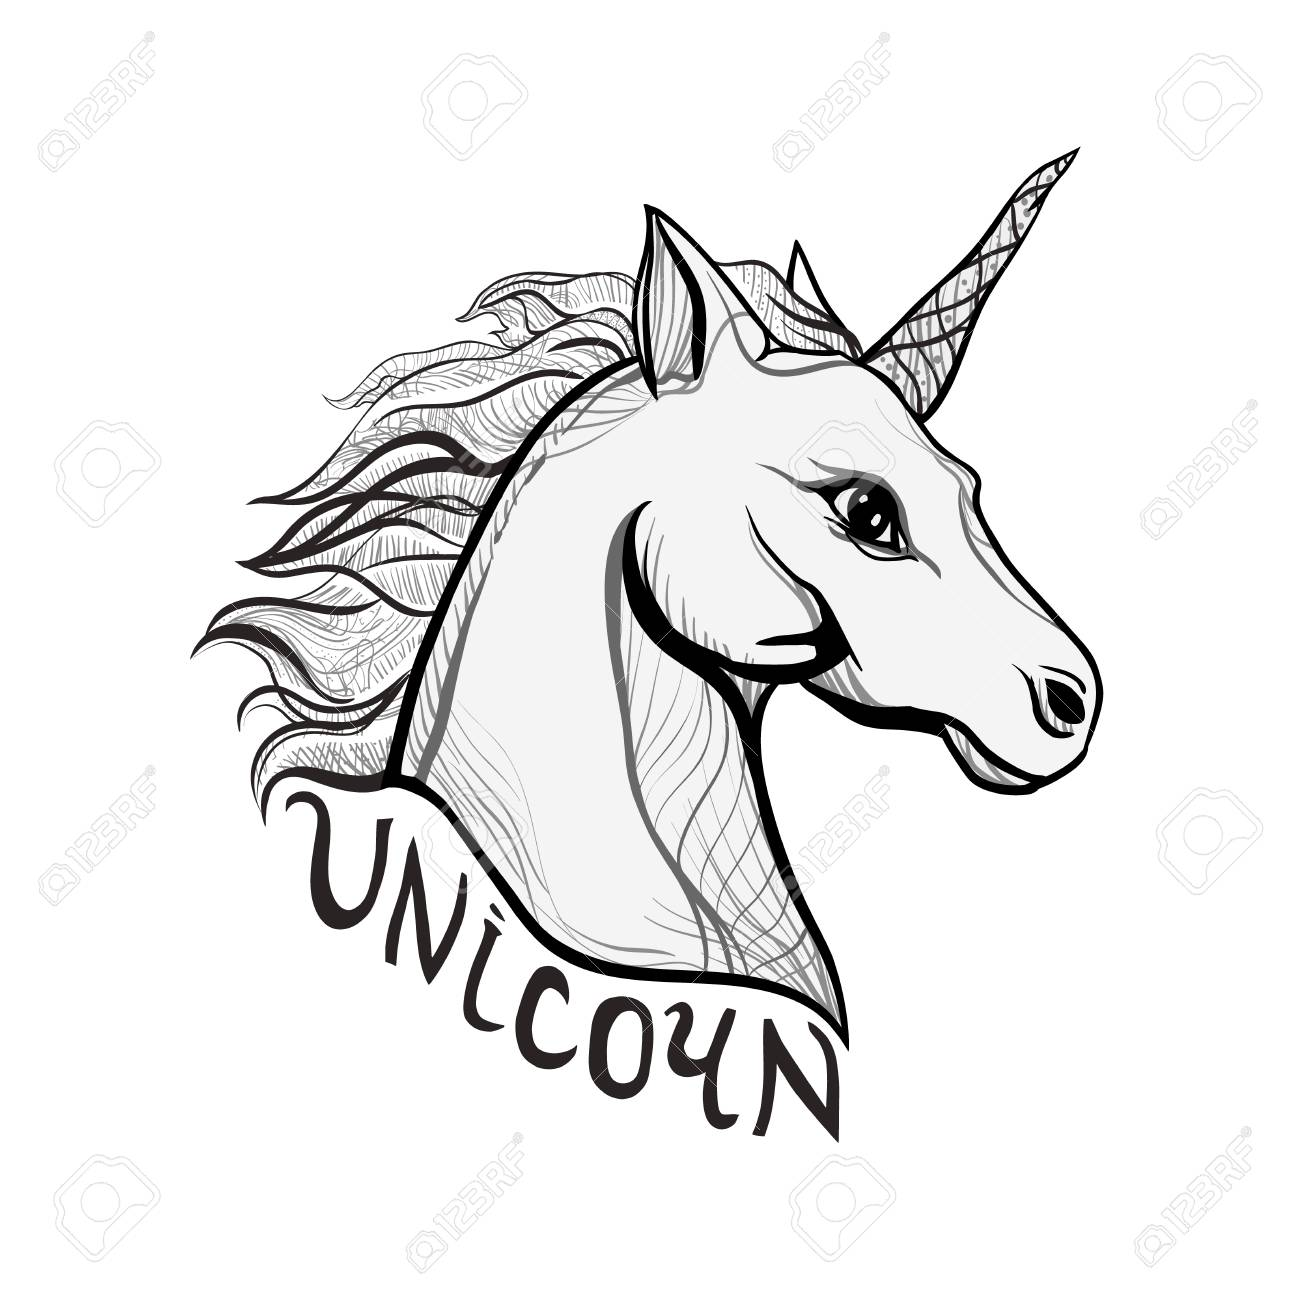 Unicorn Vintage style beautiful gothic. Character tattoo design artwork for print sketchbook cover, fabric textiles. Isolated vector illustration. Retro music cover, summer t-shirt, sticker text. - 100644953